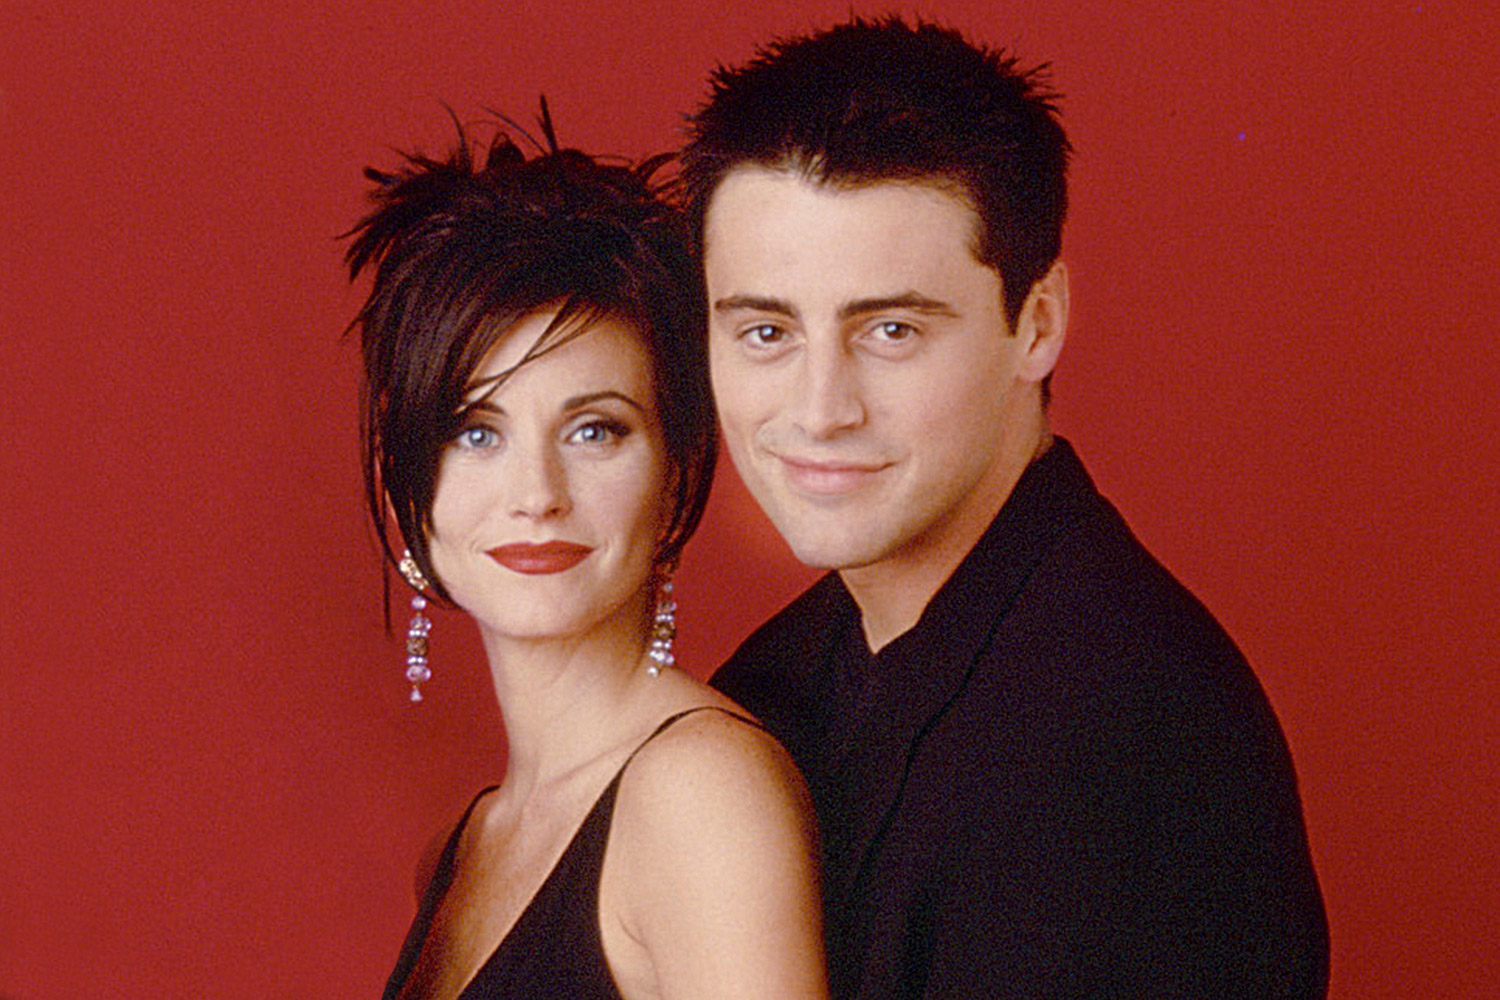 Courteney Cox Arquette as Monica Geller, Matt LeBlanc as Joey Tribbiani